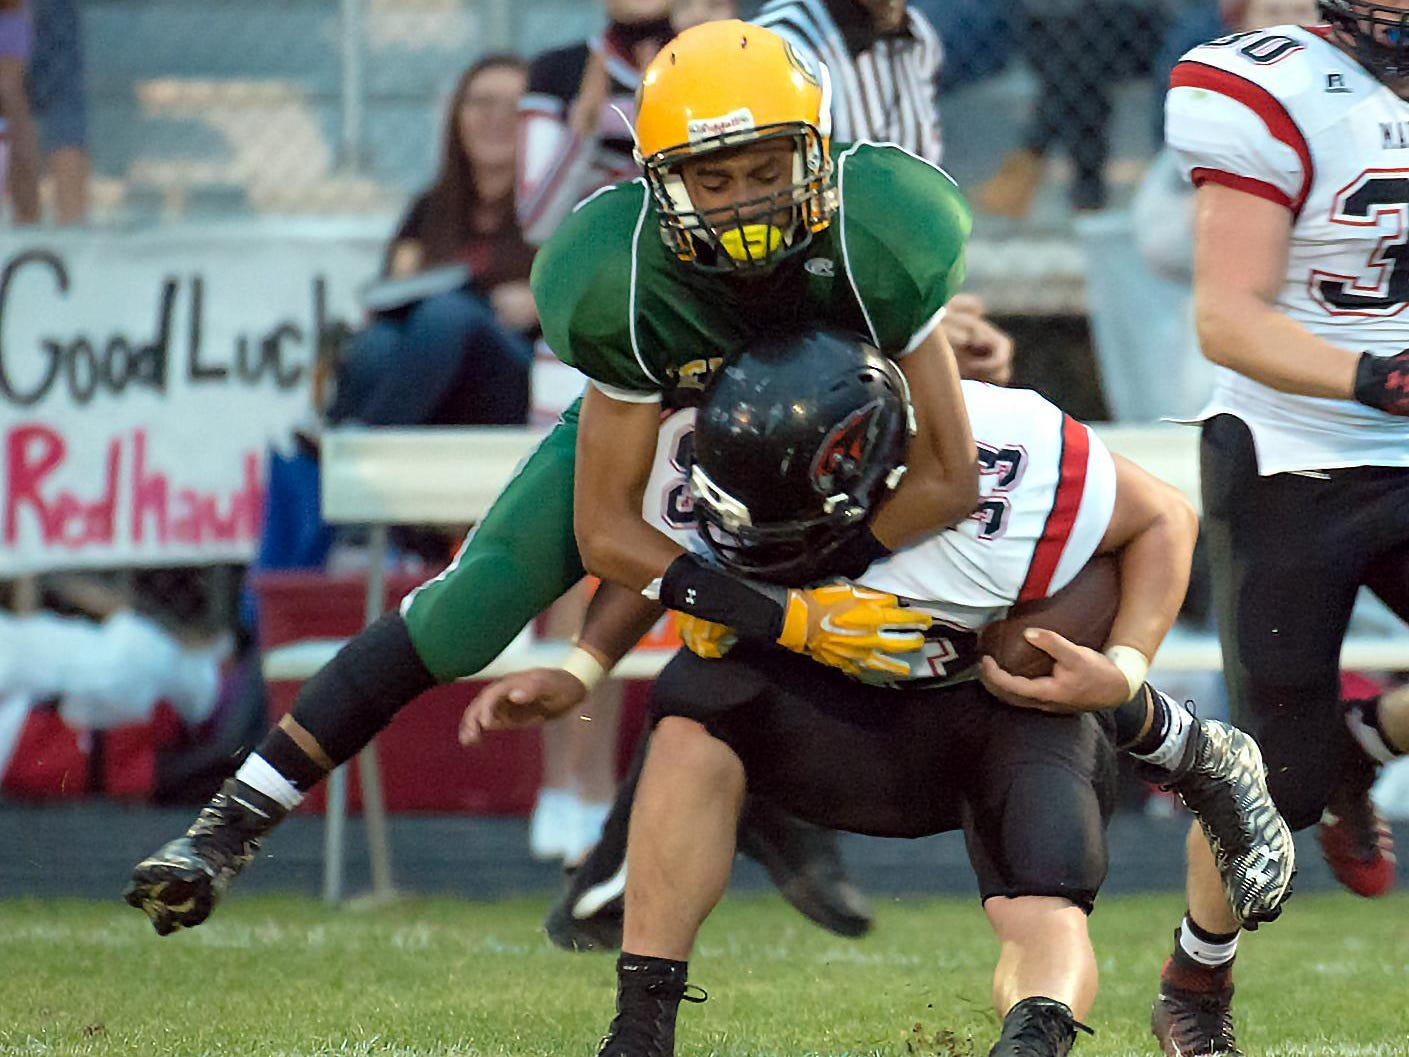 Panthers Domonick Gibson (12) has an open field tackle on Marshall's RB Christ Upright (33) Friday night.